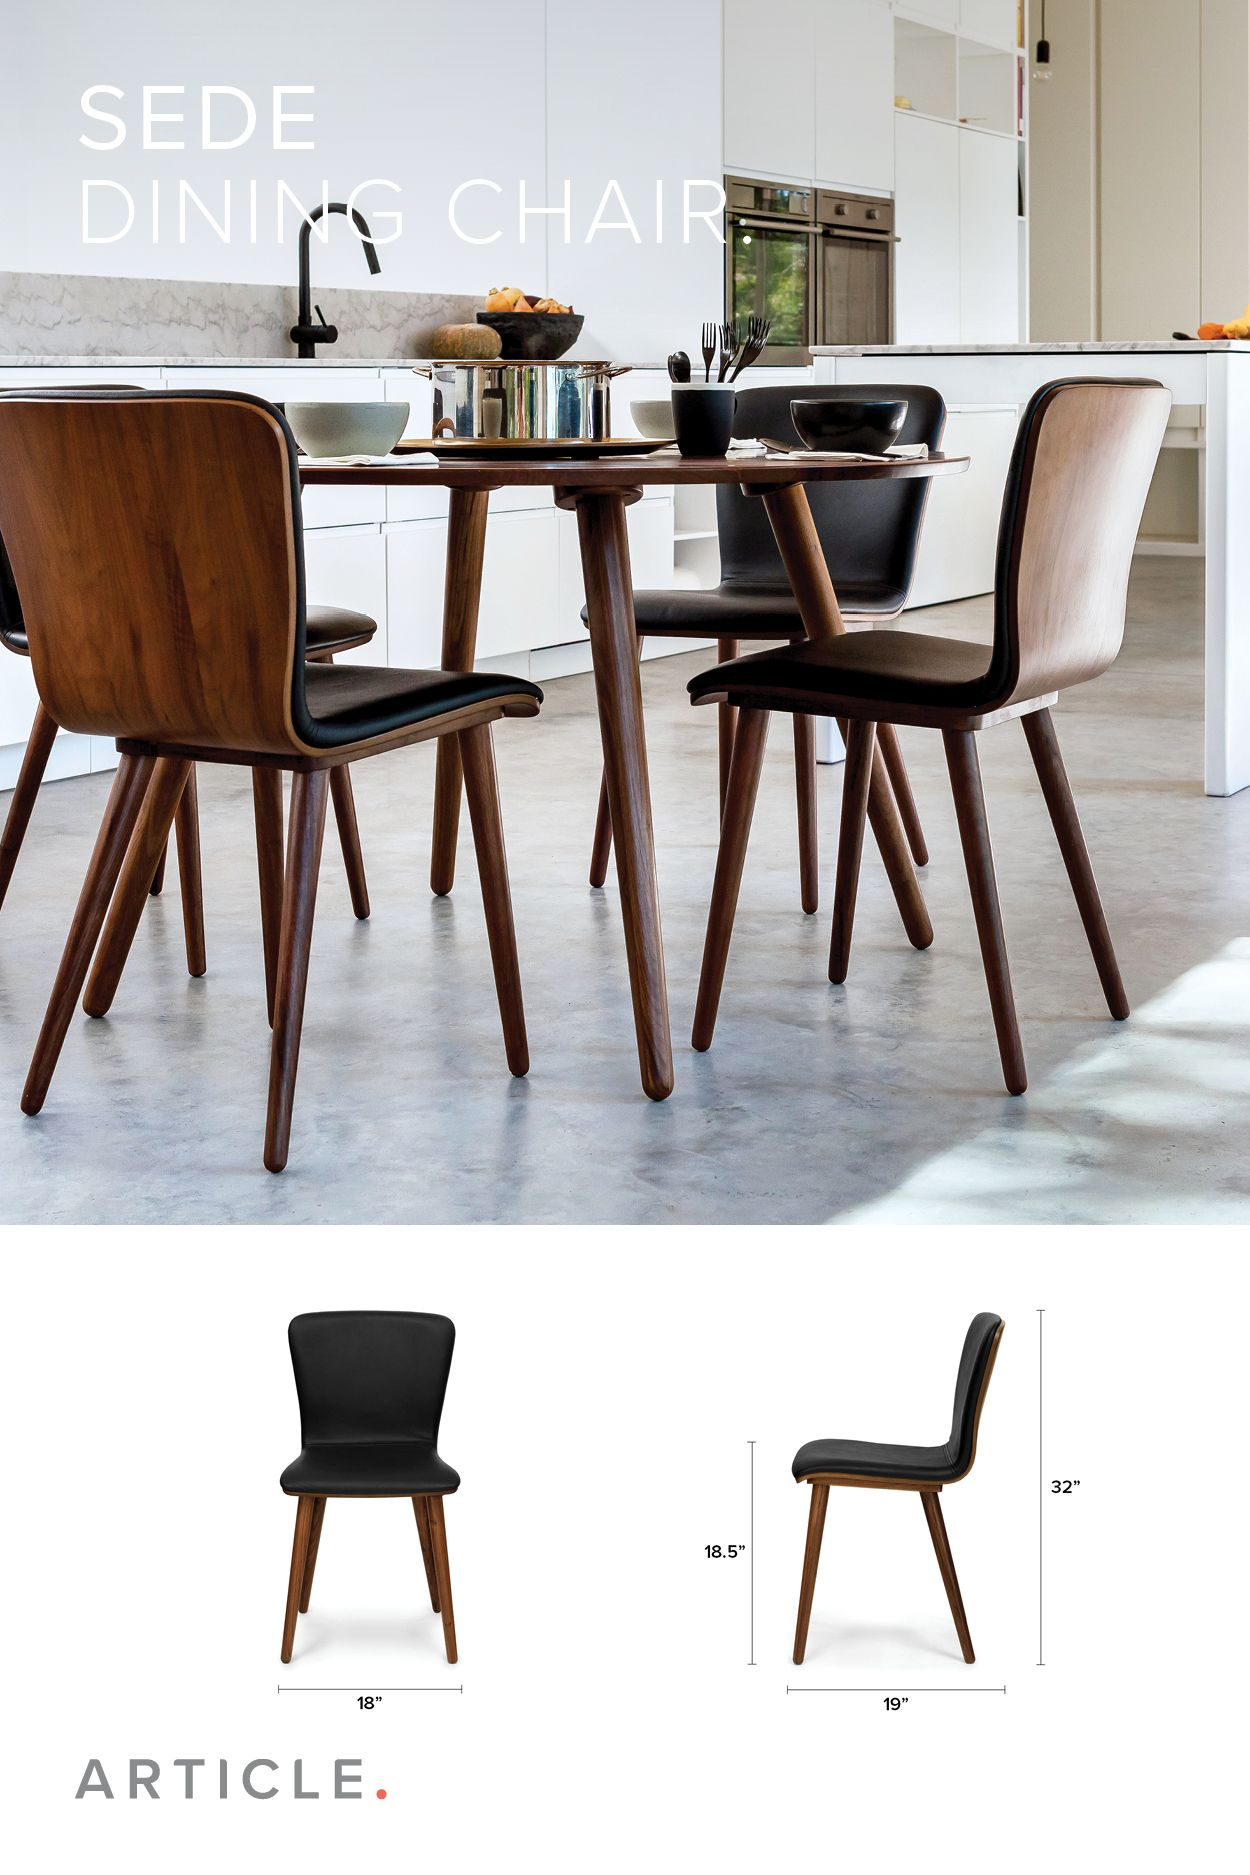 2 X Black Leather Dining Chair In Walnut Wood